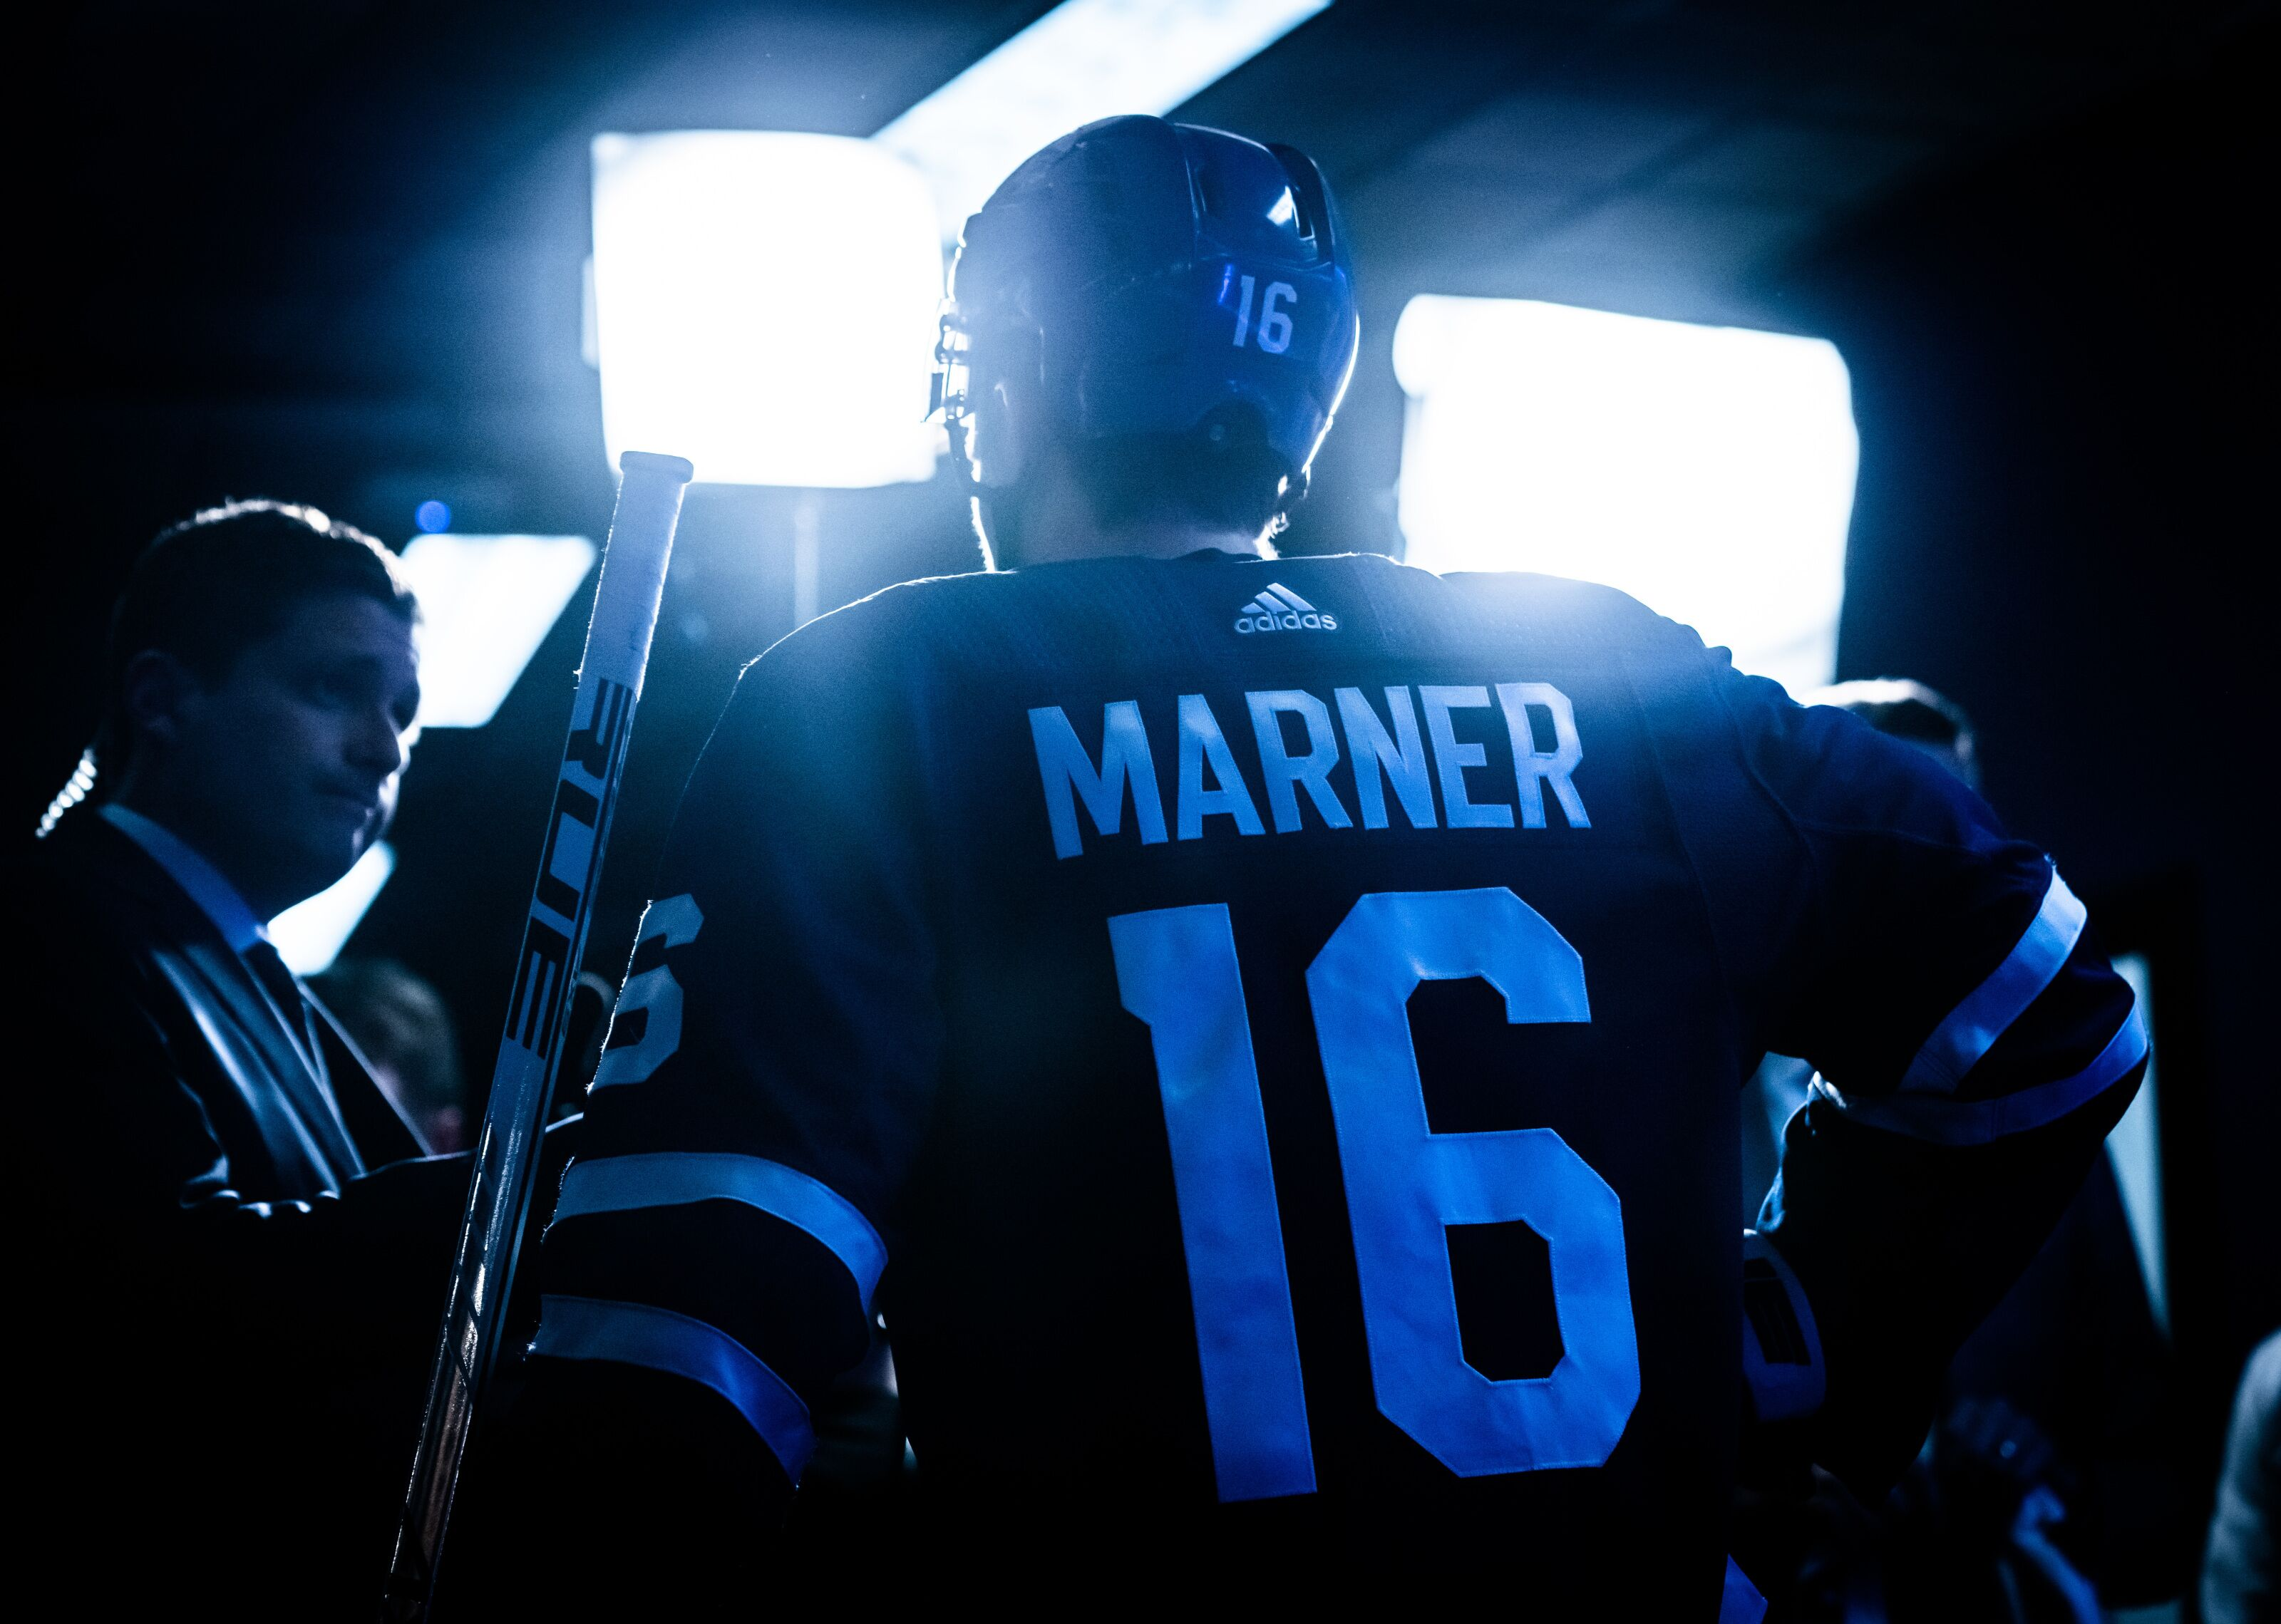 Toronto Maple Leafs: Mitch Marner Returns to Practice, Complicates Lineup